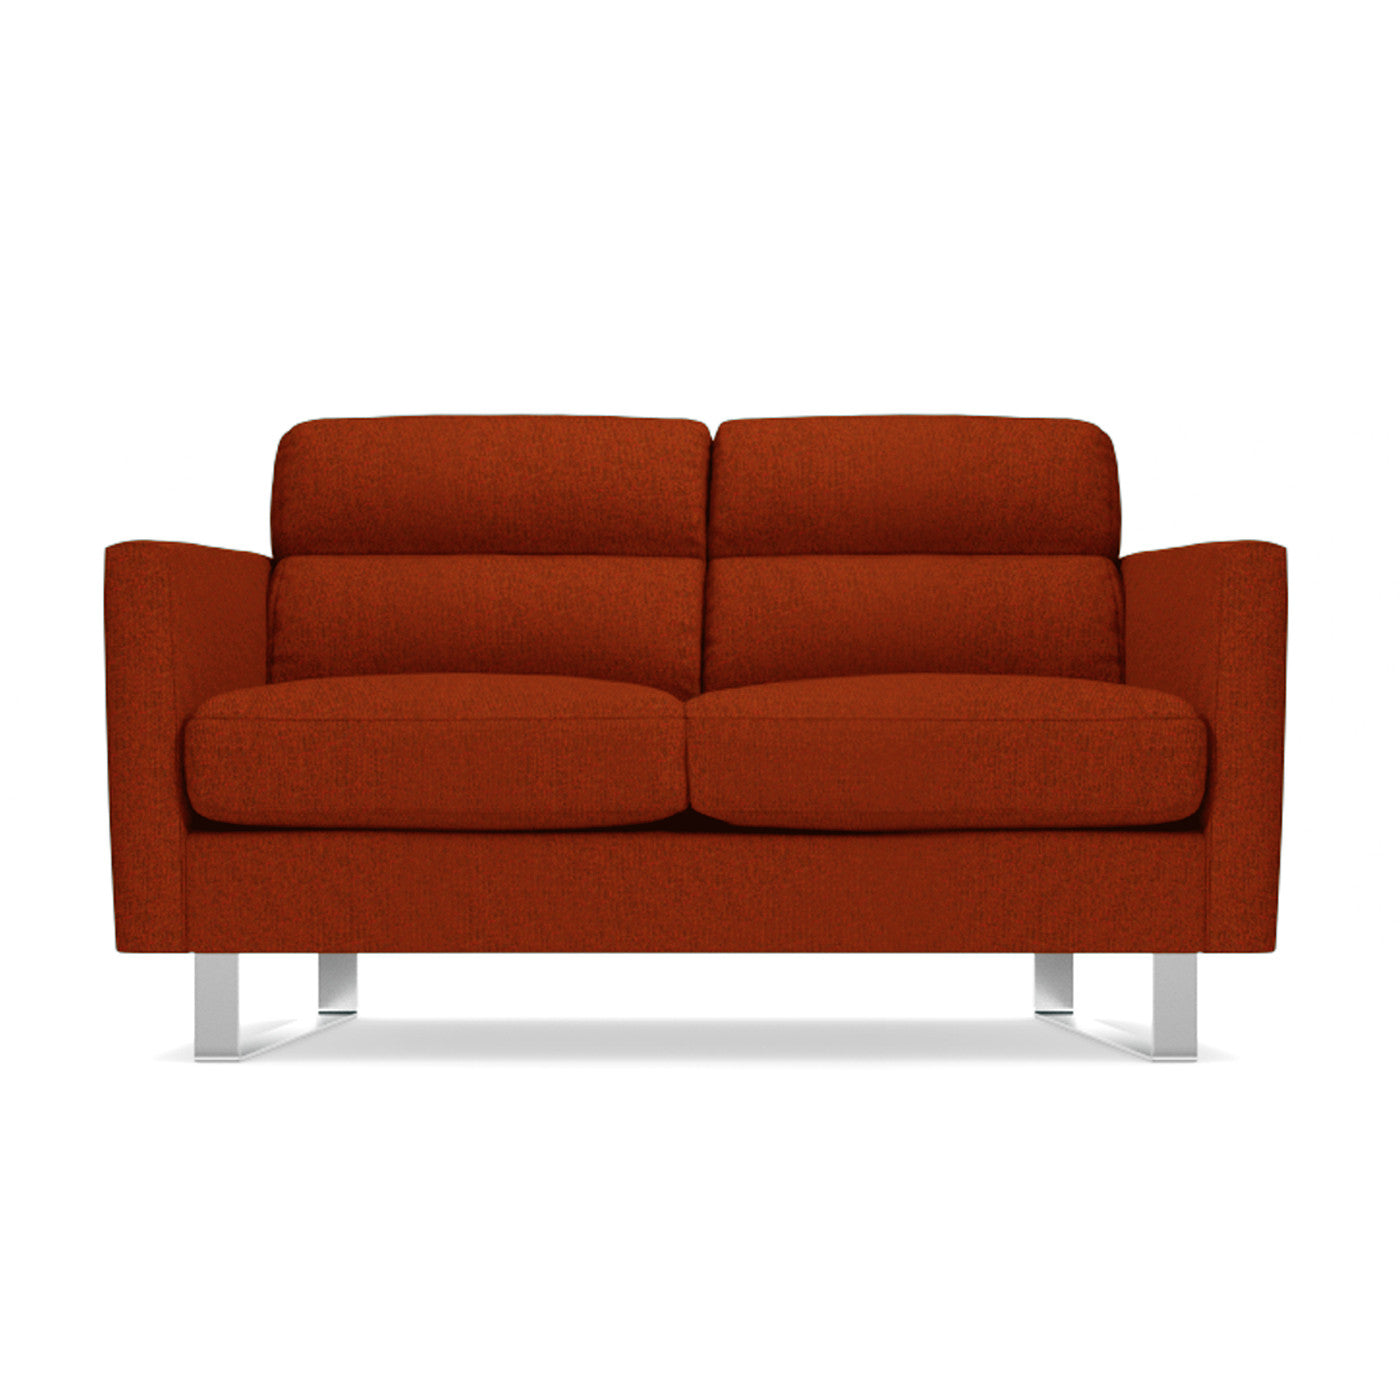 Savannah Eco-Friendly Apartment Size Sofa CHOICE OF FABRICS